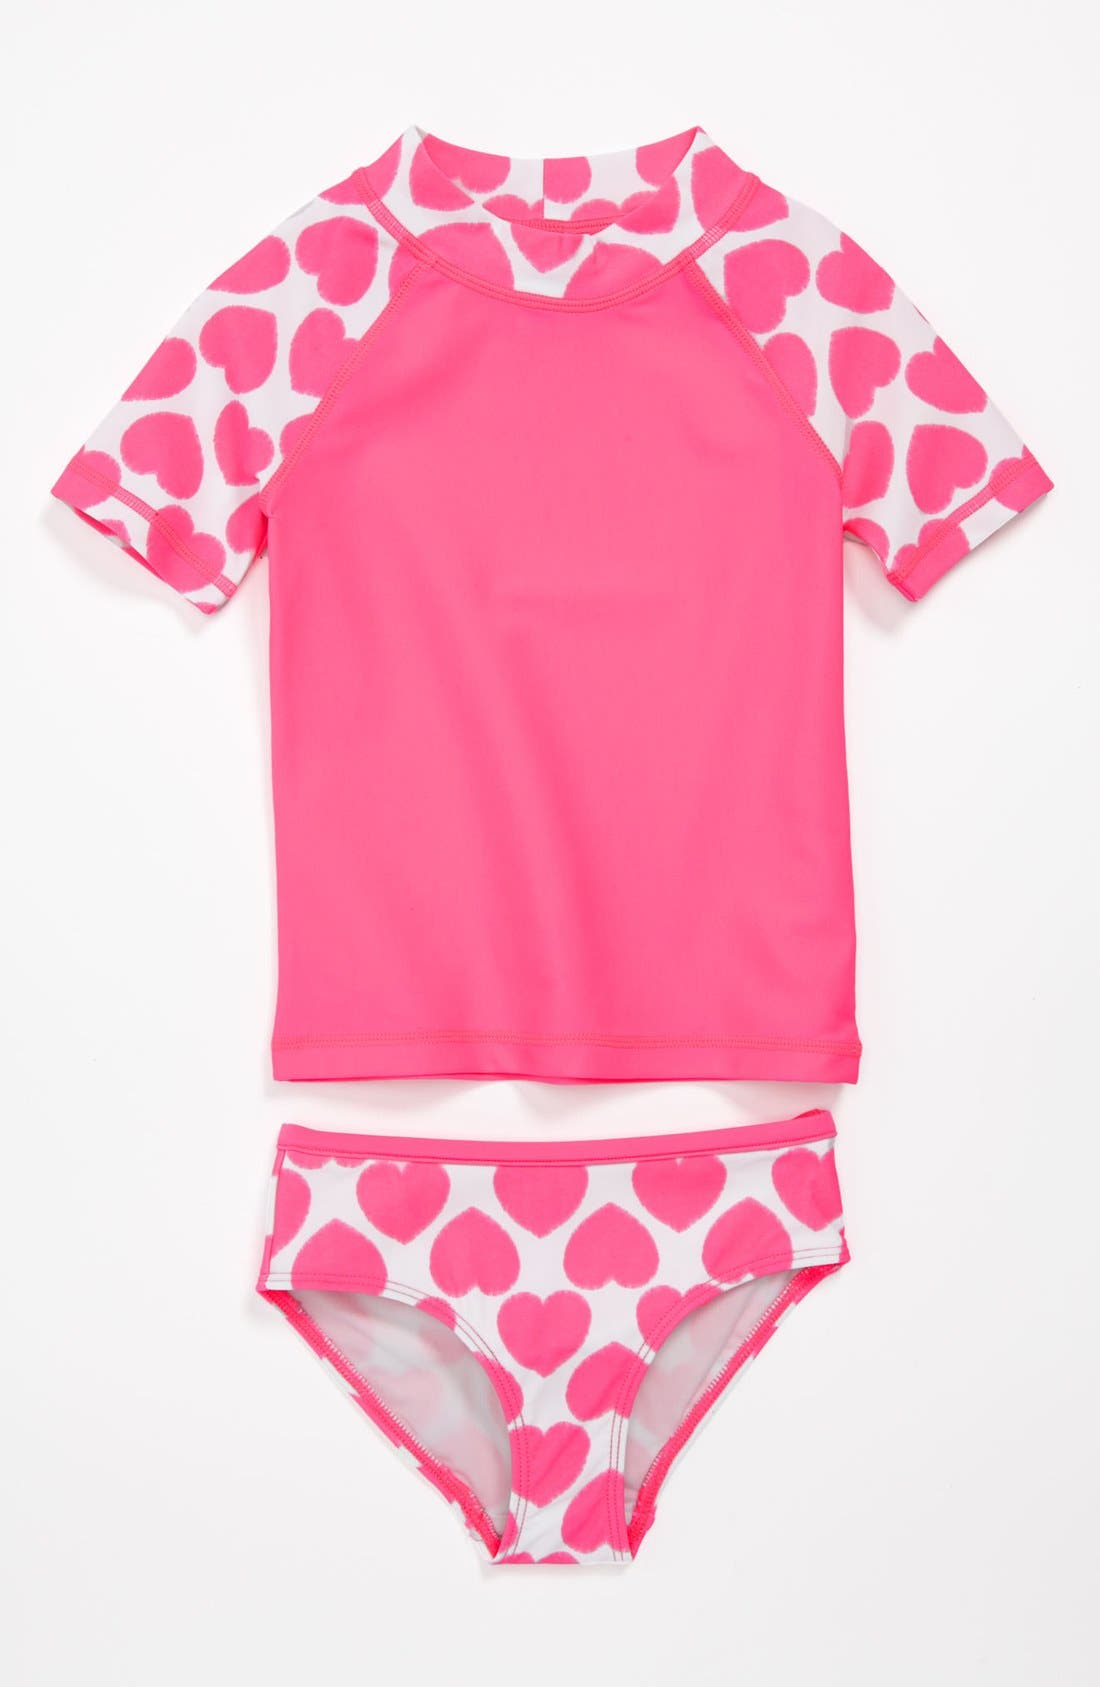 Main Image - Tucker + Tate Rashguard Shirt & Bottoms (Toddler Girls)